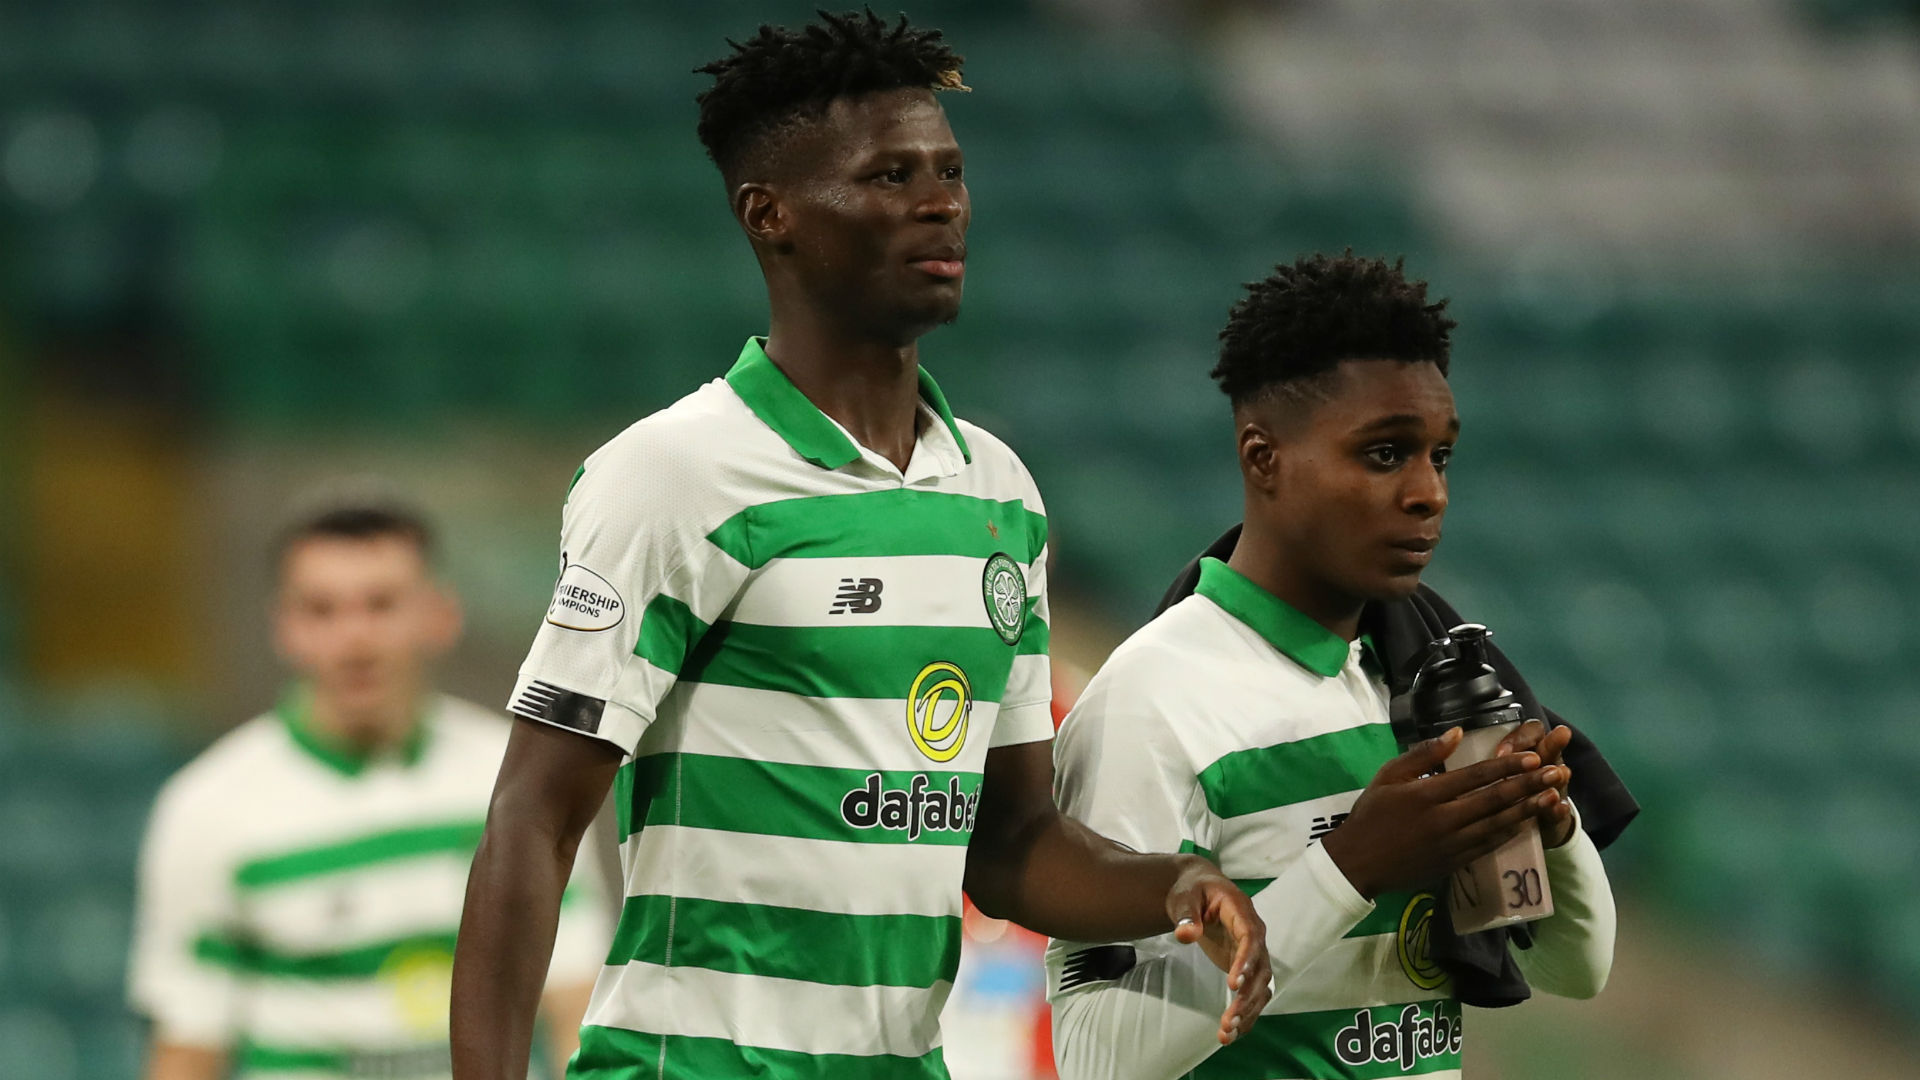 Celtic striker Bayo inspired by Edoaurd's progress